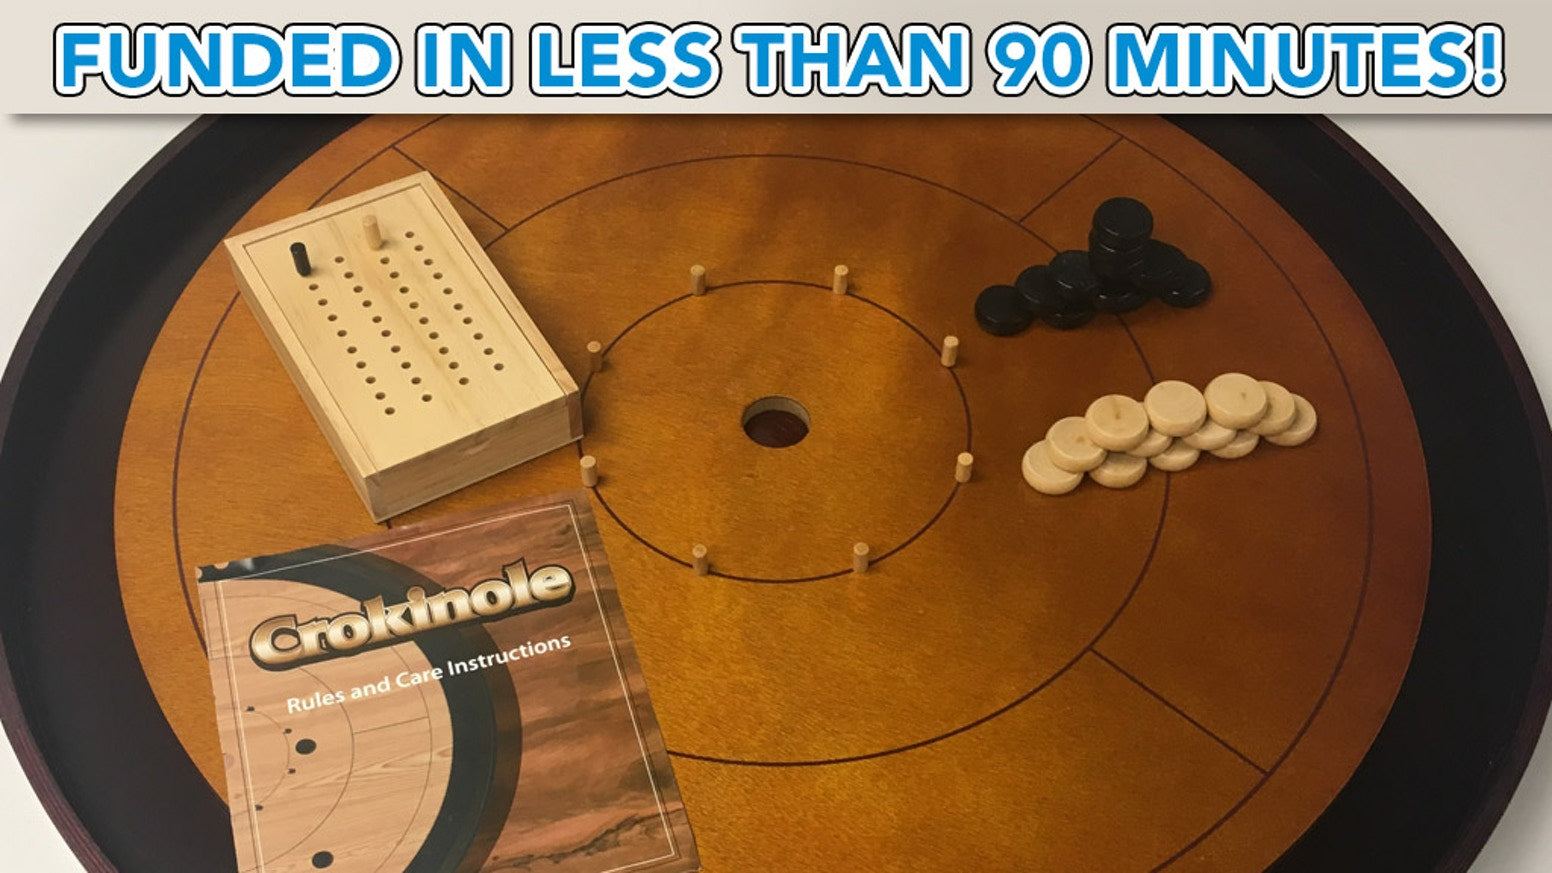 CROKINOLE: Join 1,000+ Backers Who Have Pledged Over $121K!!! [Our New Kickstarter]